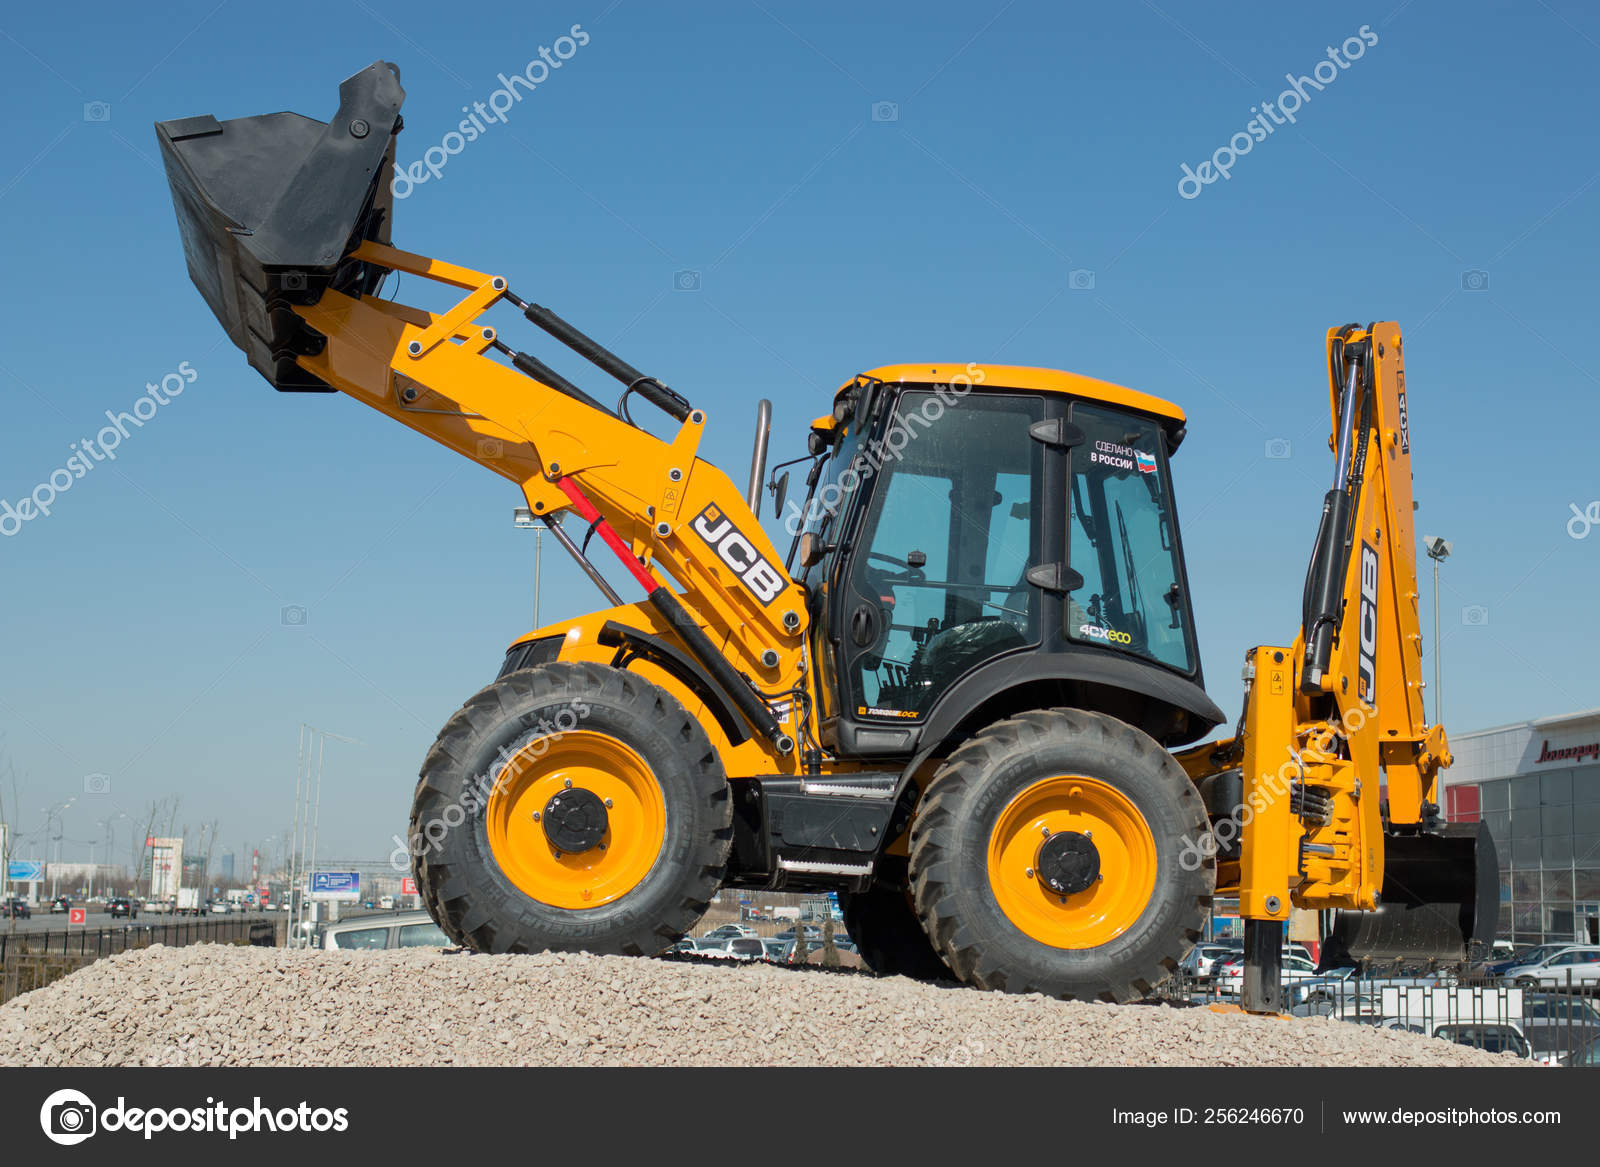 The JCB backhoe loader stands on the advertising stand in